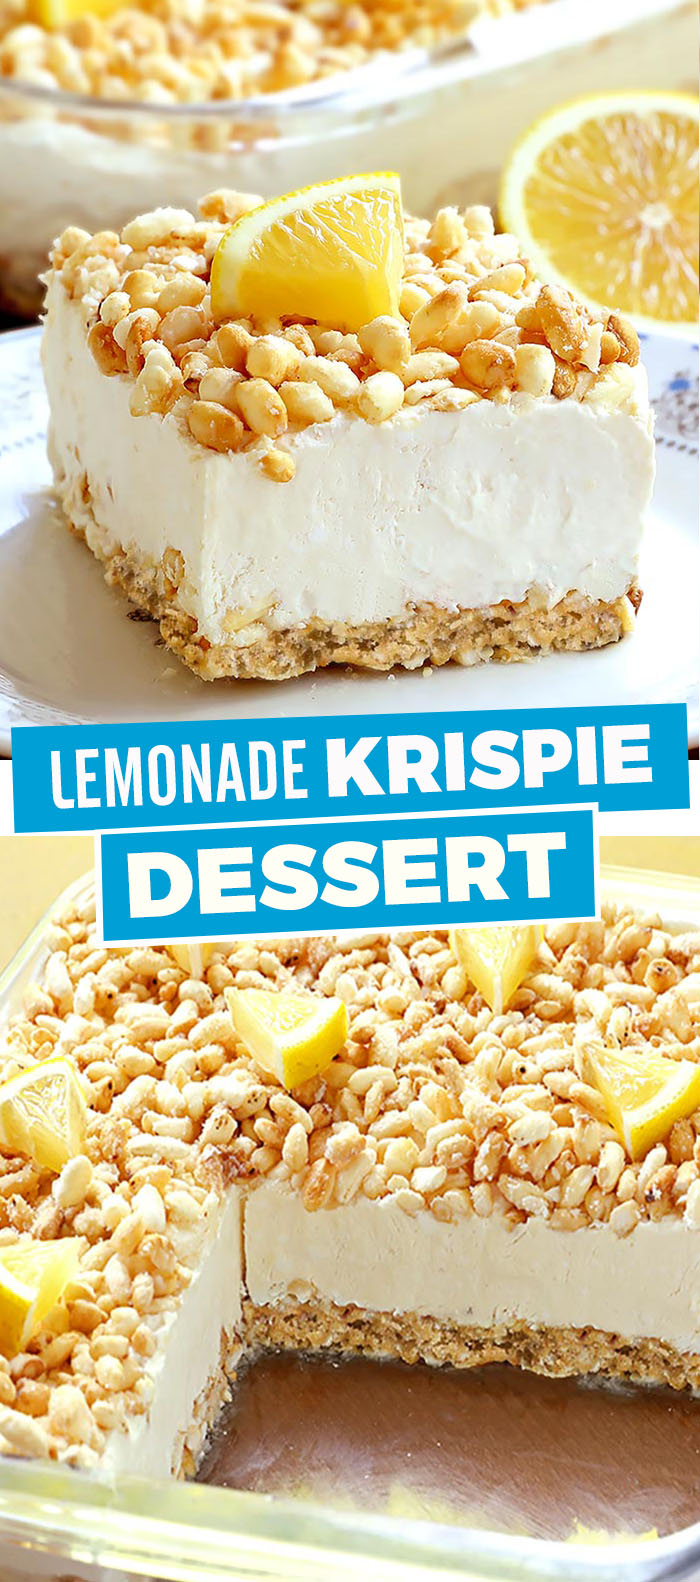 A rice krispie crust filled with creamy lemonade filling, this Lemonade Krispie Dessert recipe will be your favorite summertime treat.